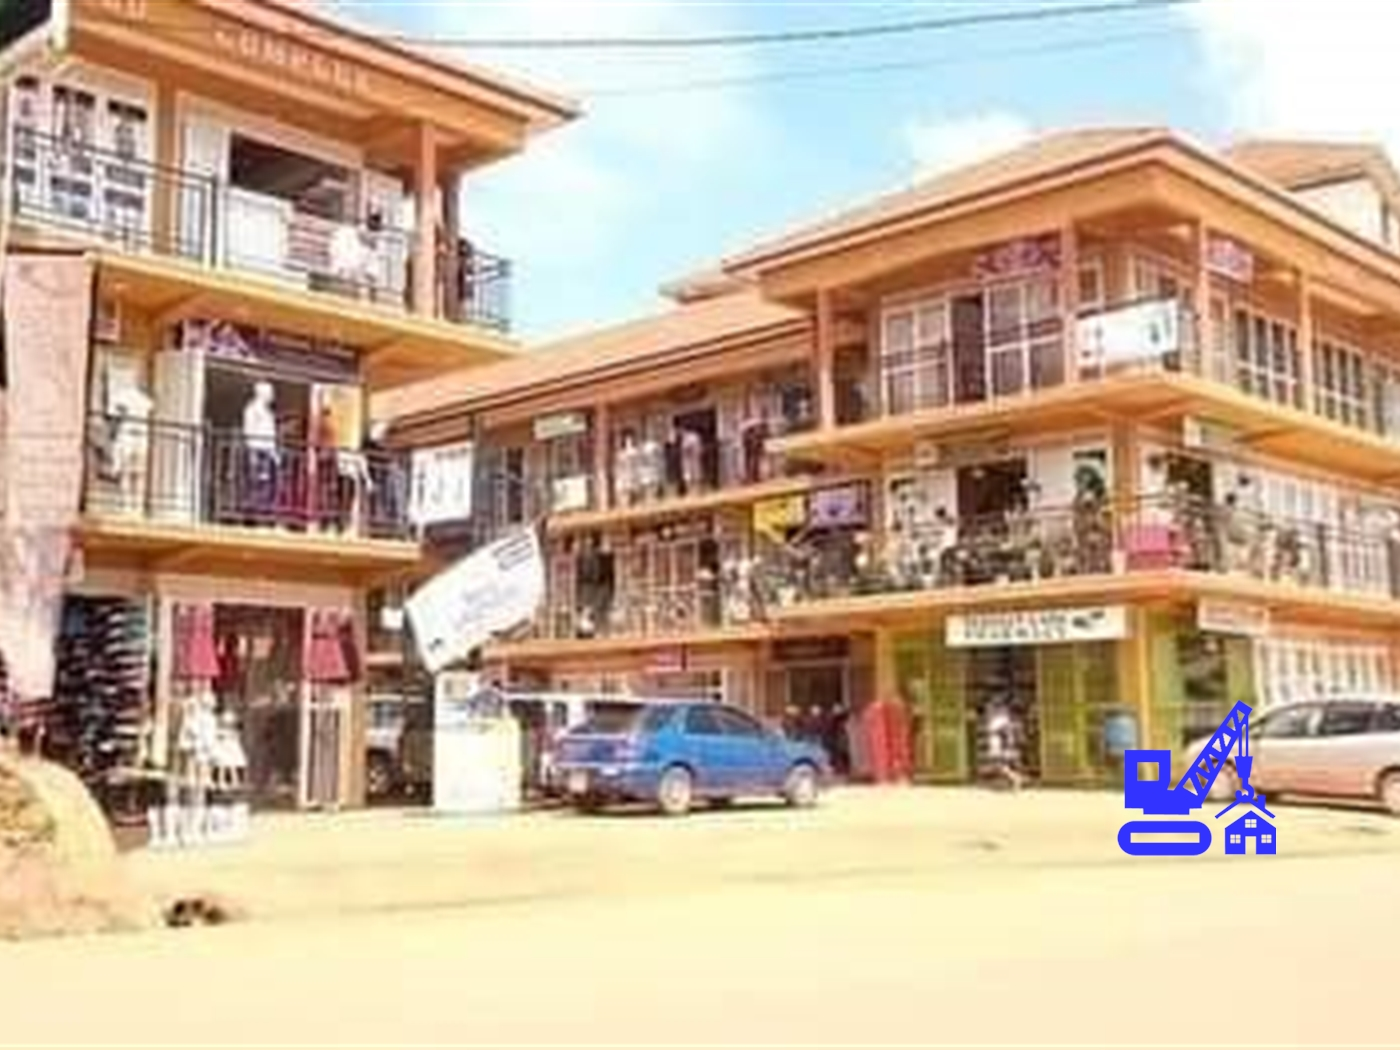 Commercial block for sale in Ntinda Kampala